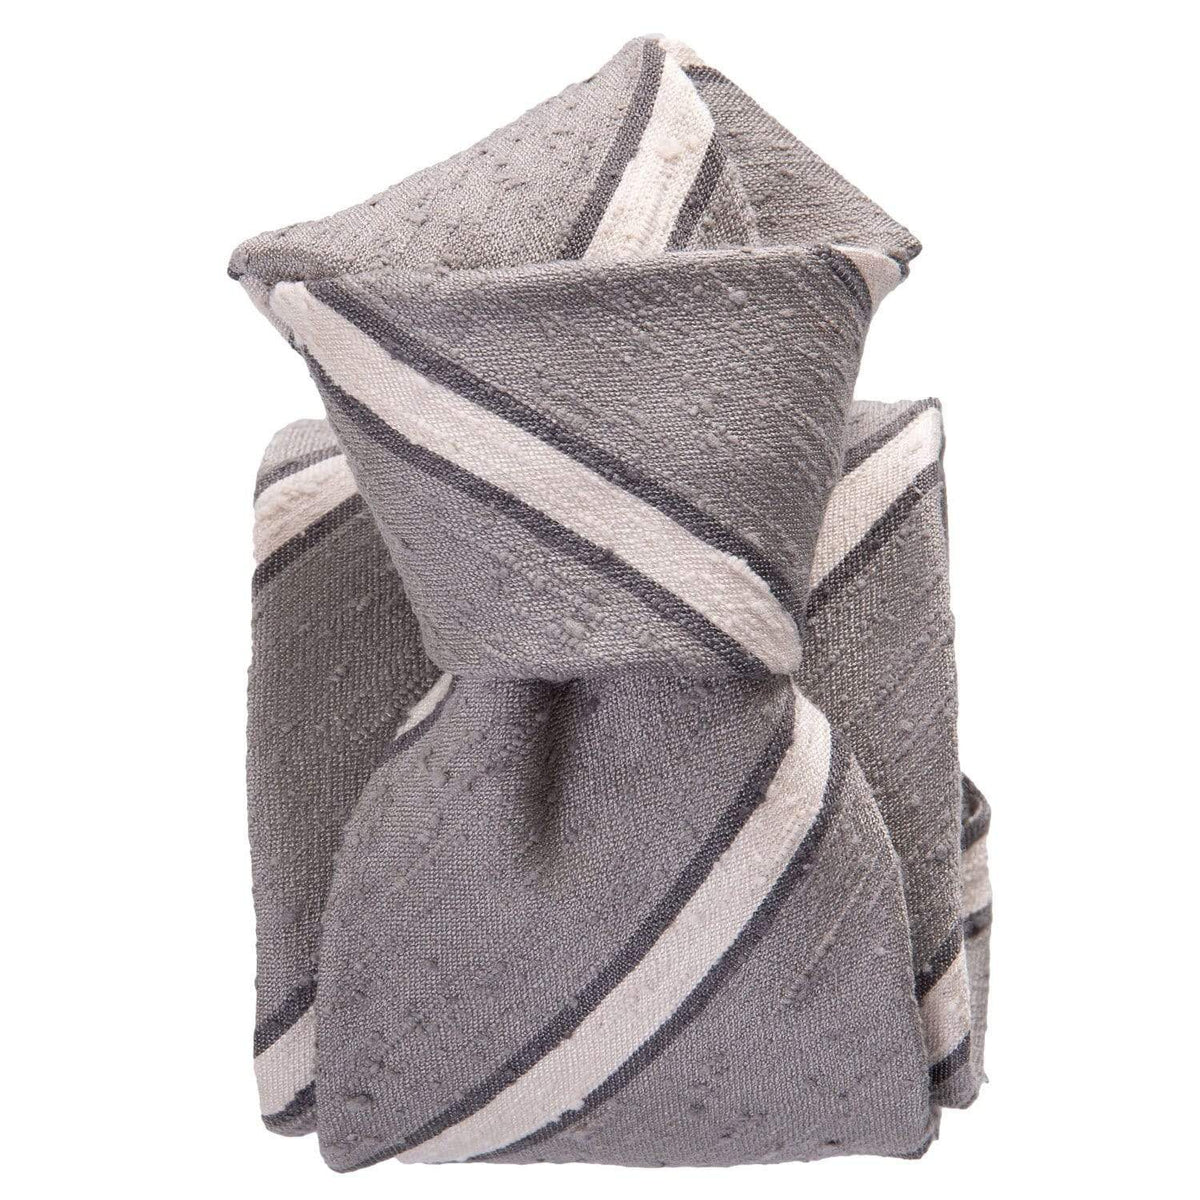 Striped Shantung Silk Tie - Grey - Made in Italy